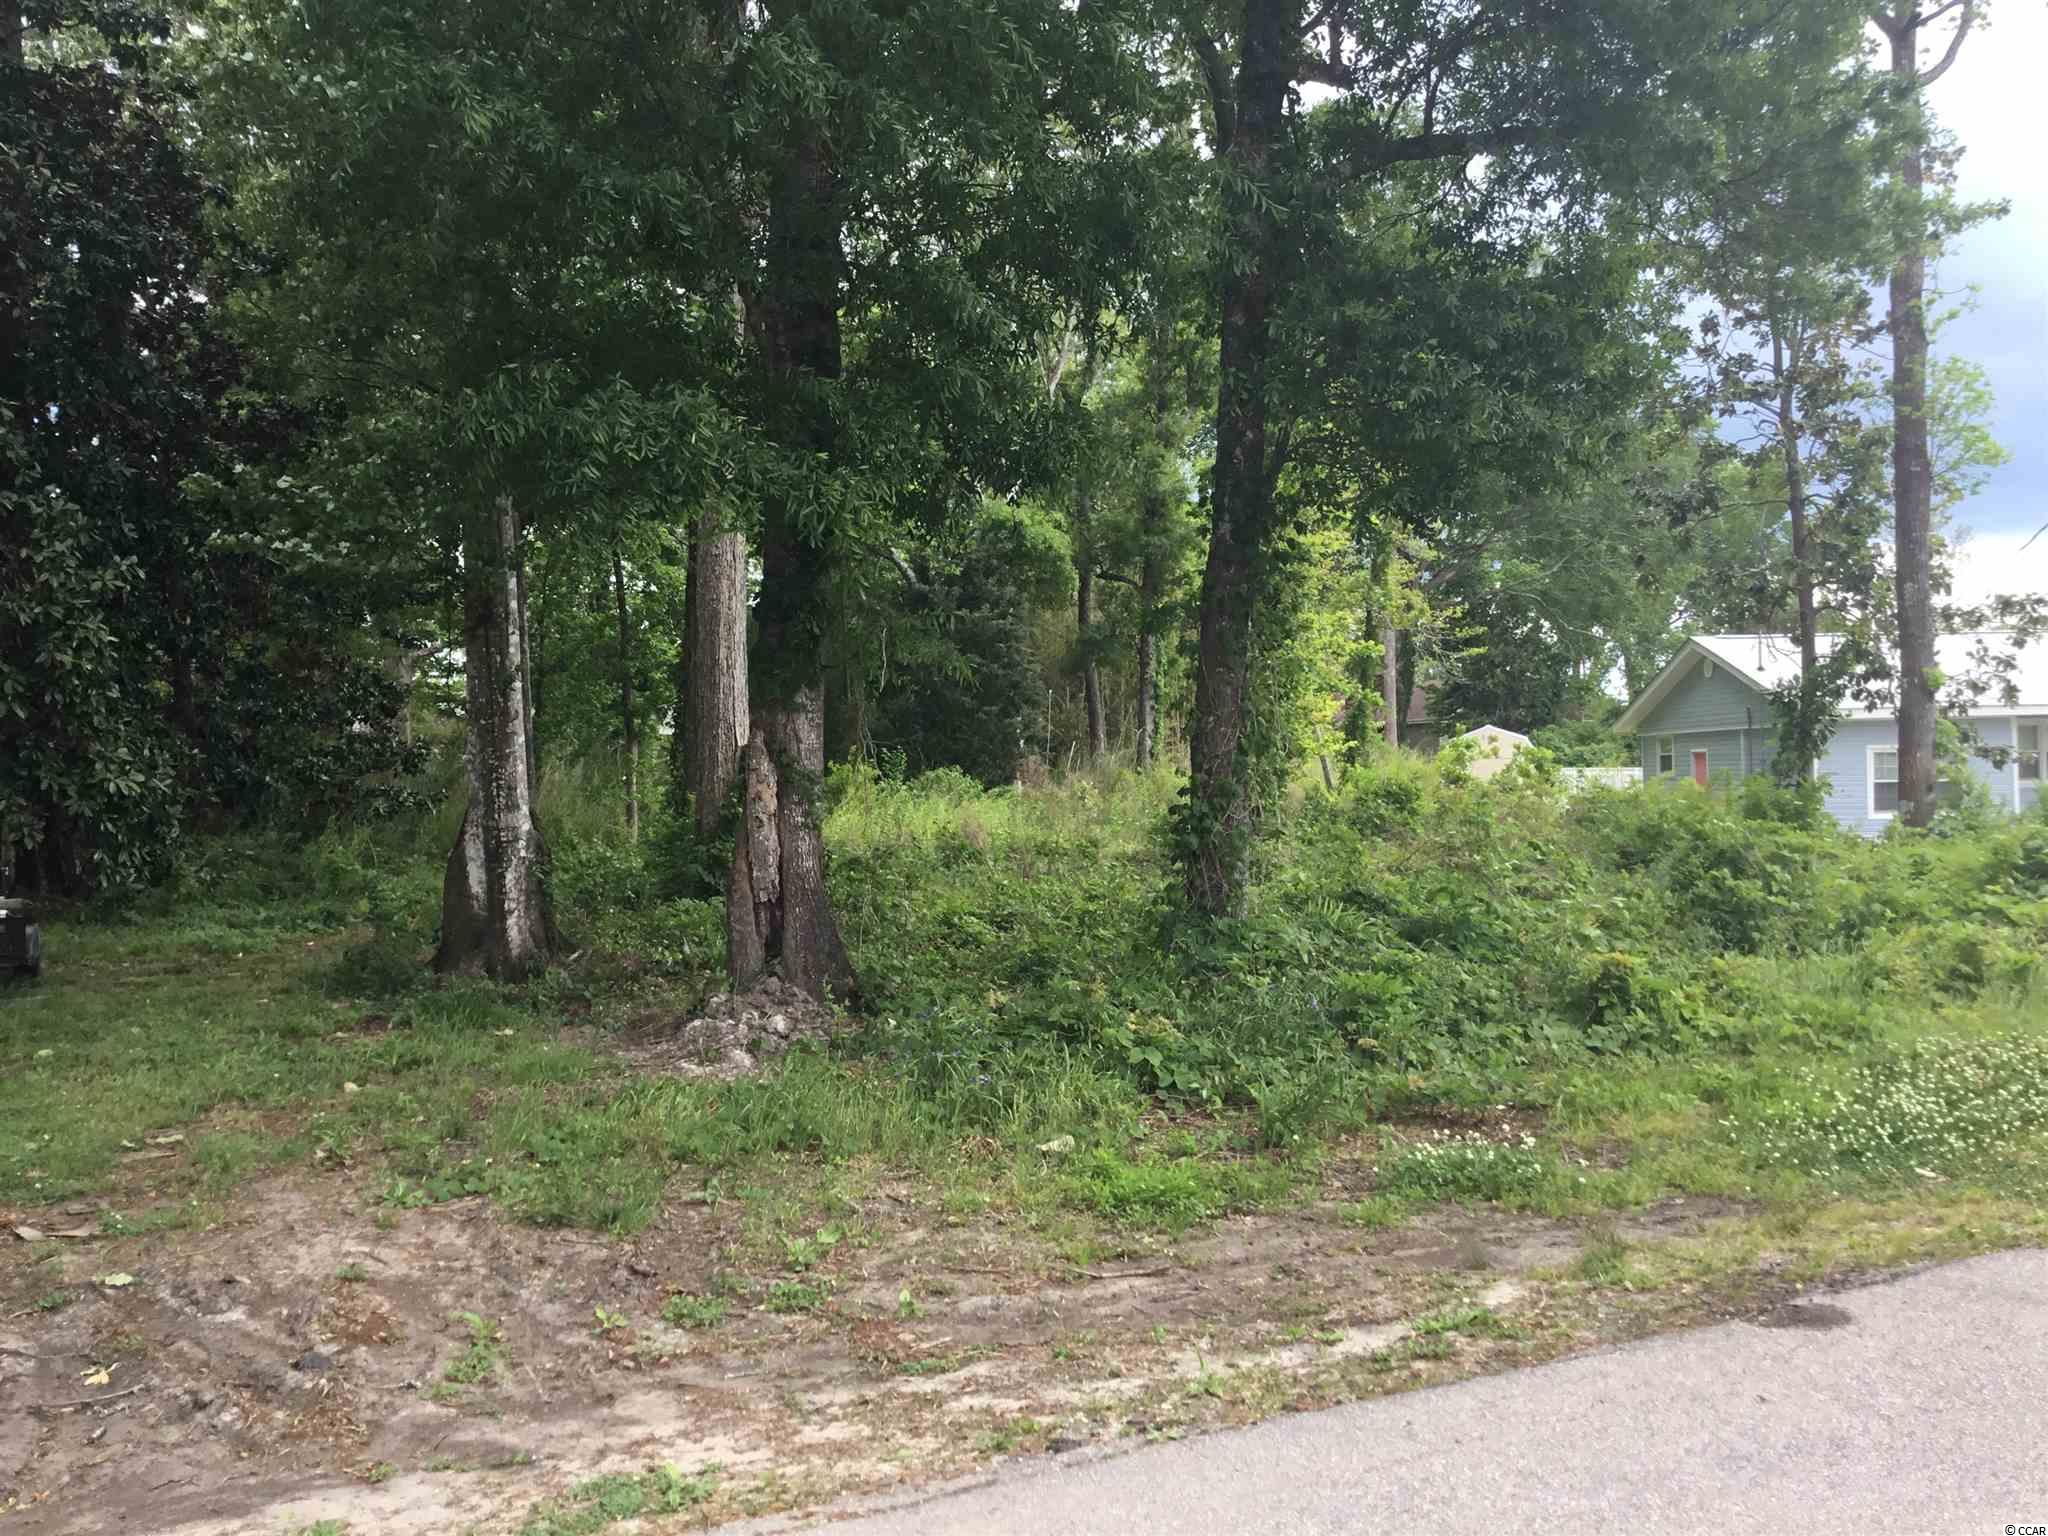 Come build your dream home on one of the last lots left in this cul-de-sac located walking distance to the beach.  NO HOA. Located within City of Myrtle Beach limits. Seller willing to Owner Finance to a qualified Buyer. Please contact Listing Agent for details.